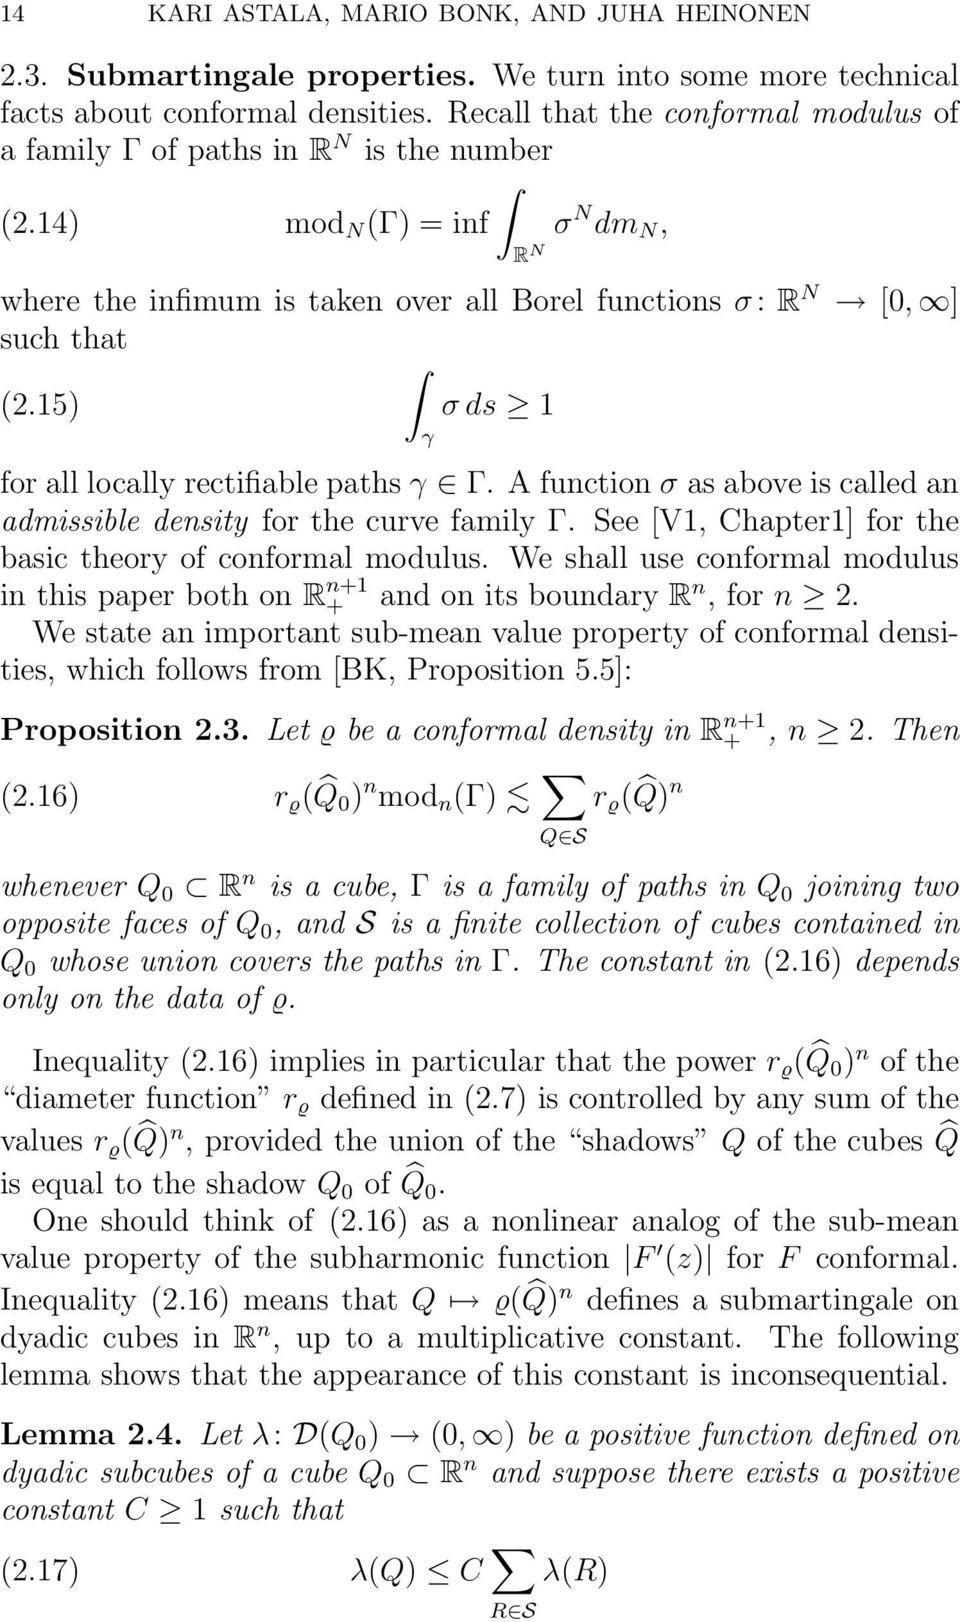 15) σds 1 γ for all locally rectifiable paths γ Γ. A function σ as above is called an admissible density for the curve family Γ. See [V1, Chapter1] for the basic theory of conformal modulus.